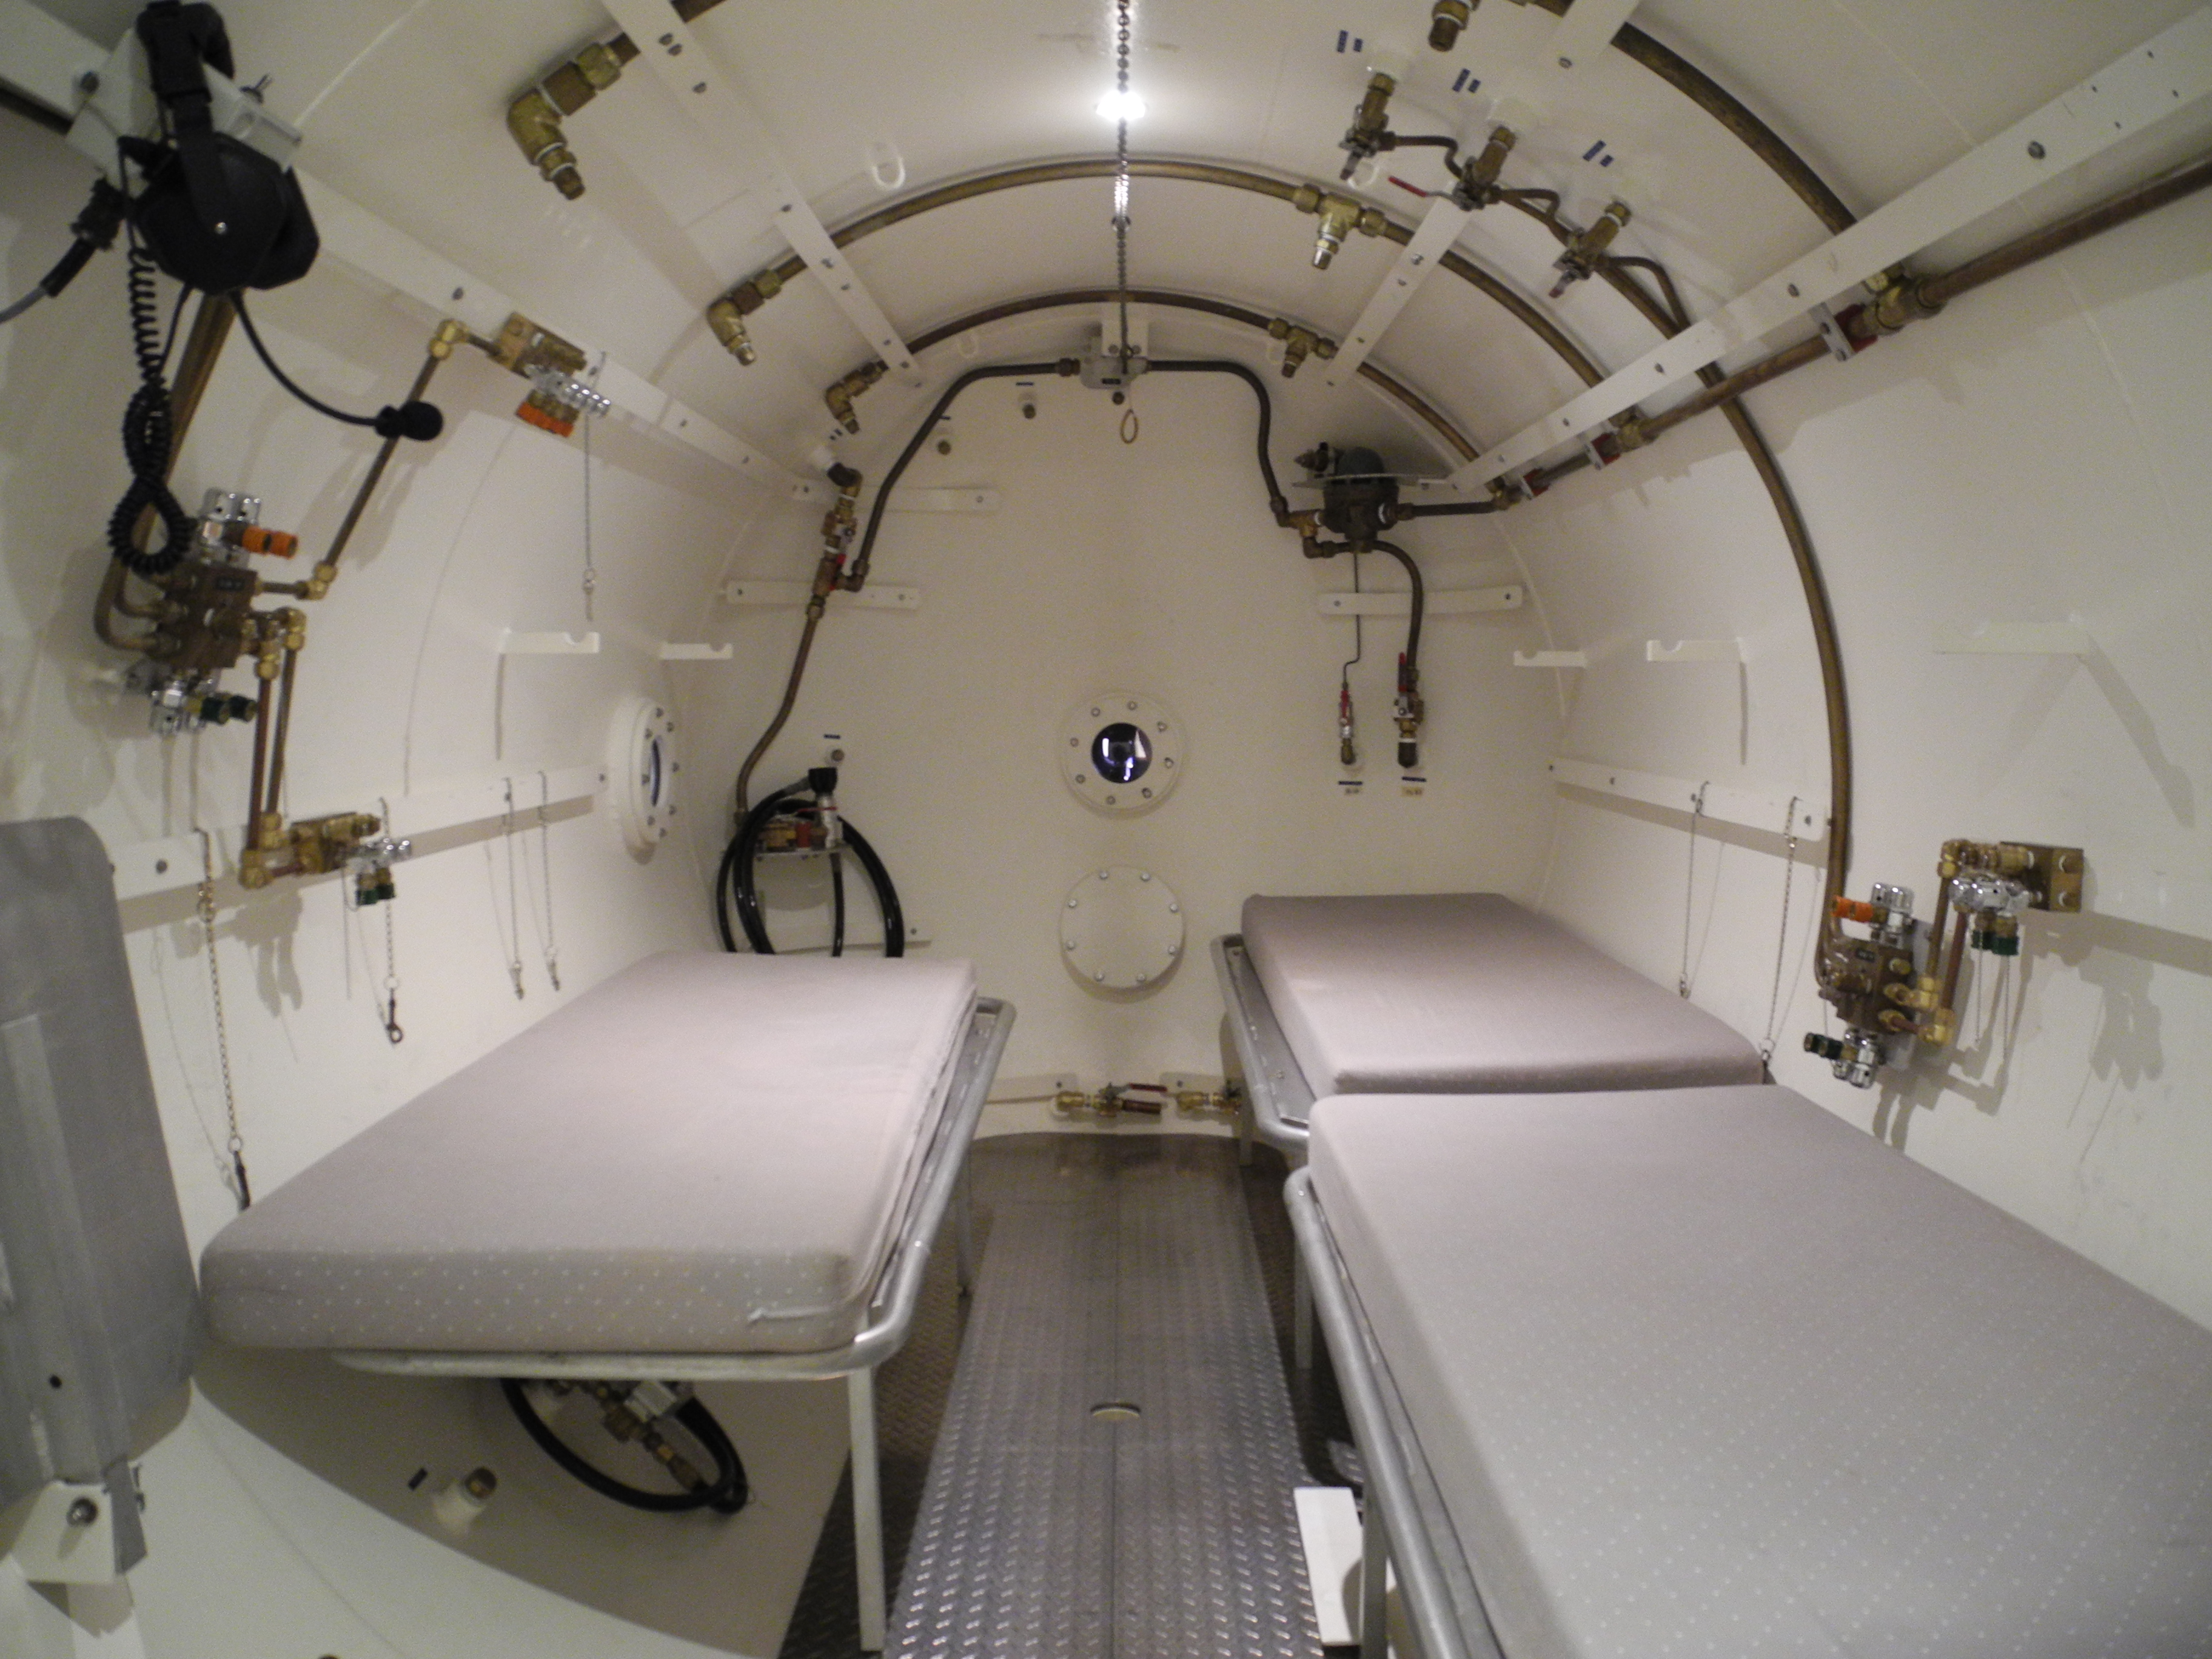 Researchers propose experiments that would use hyperbaric oxygen treatmenton on individuals with autism